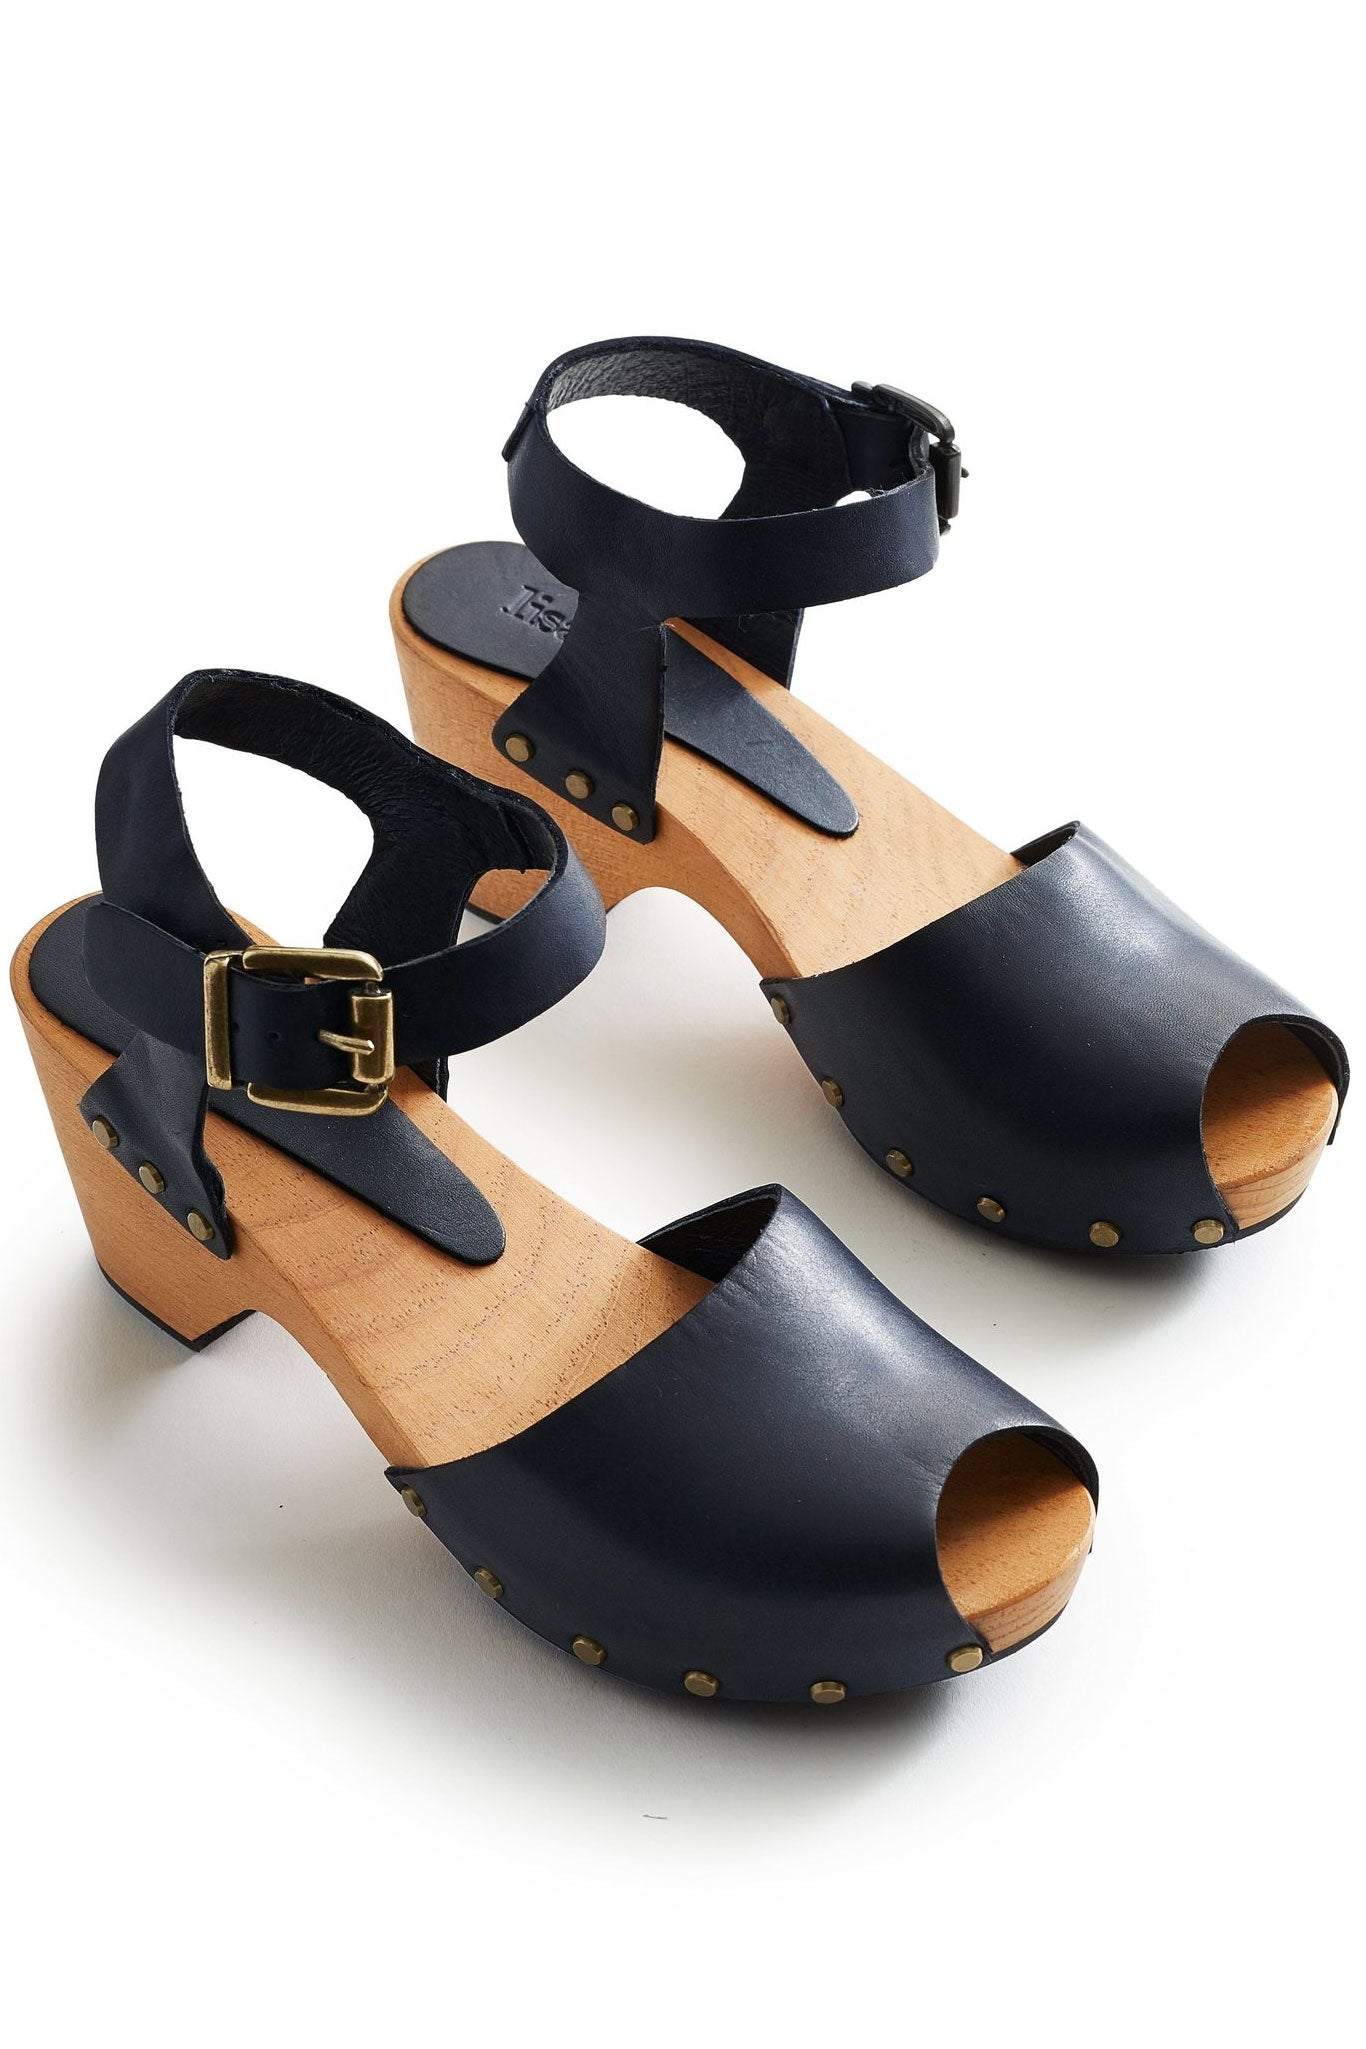 lisa b. Peep Toe Clogs